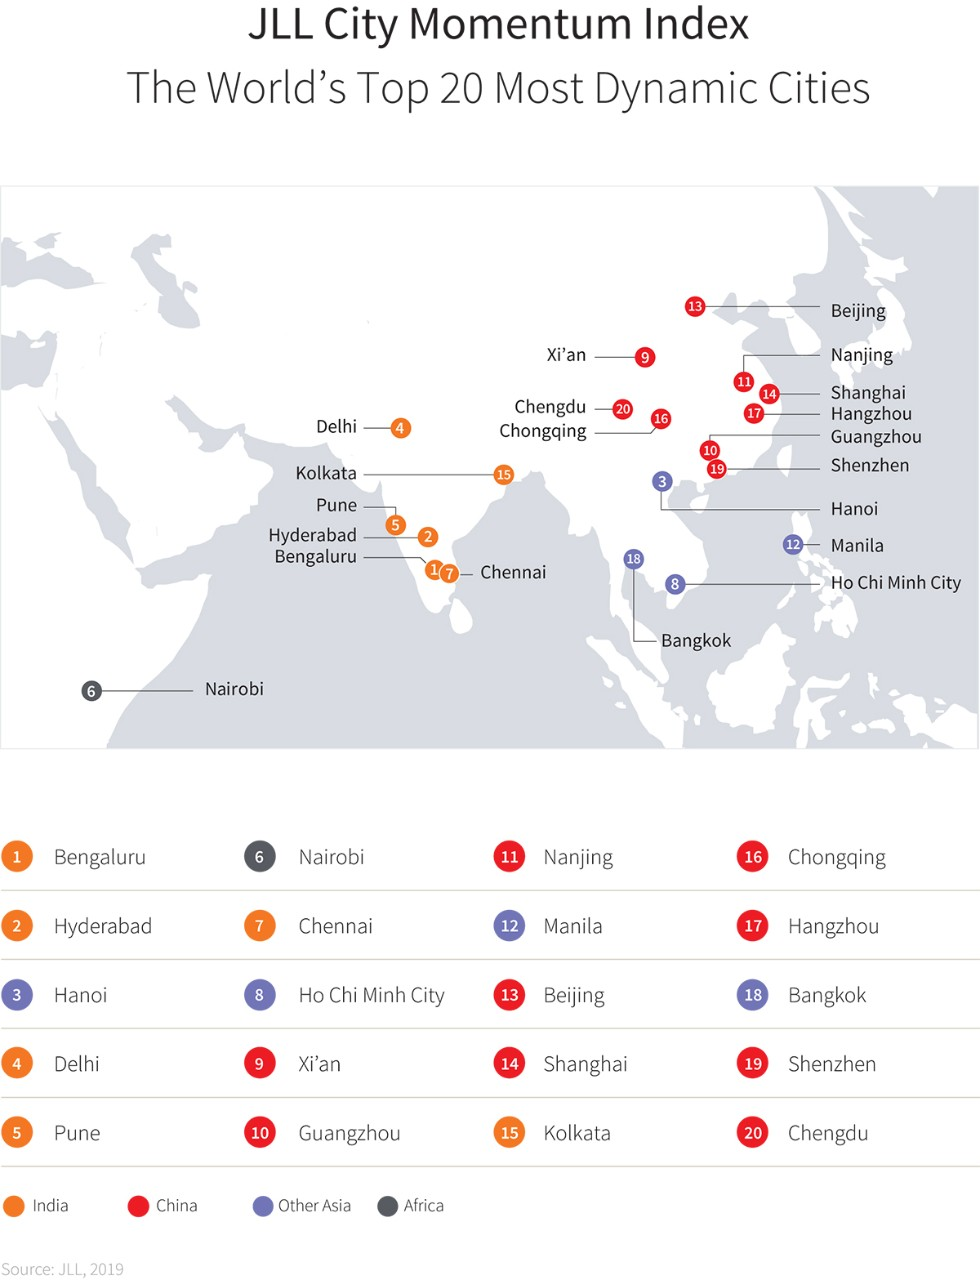 JLL City Momentum Index -- The World's Top 20 Most Dynamic Cities